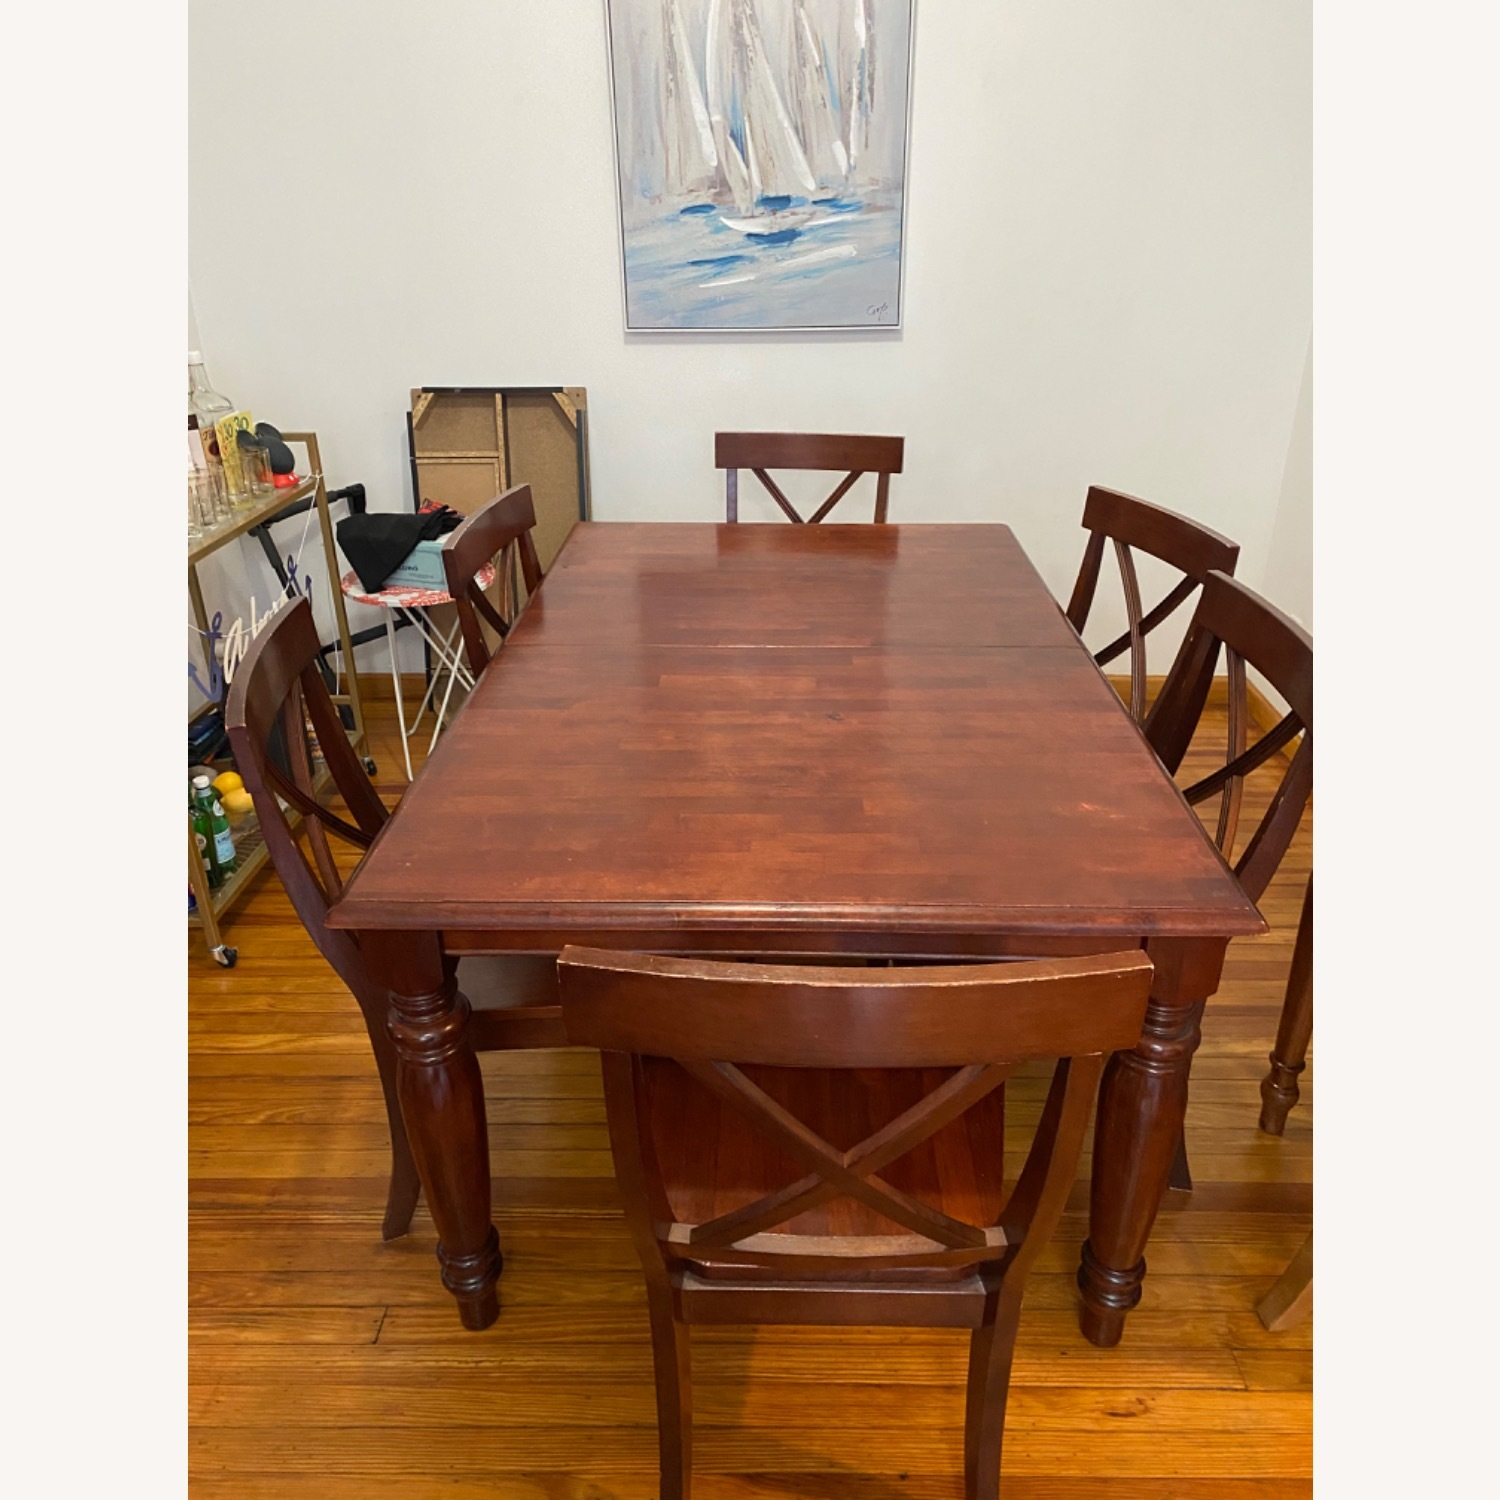 Pier One Imports Dining Set with Hidden Leaf - image-1